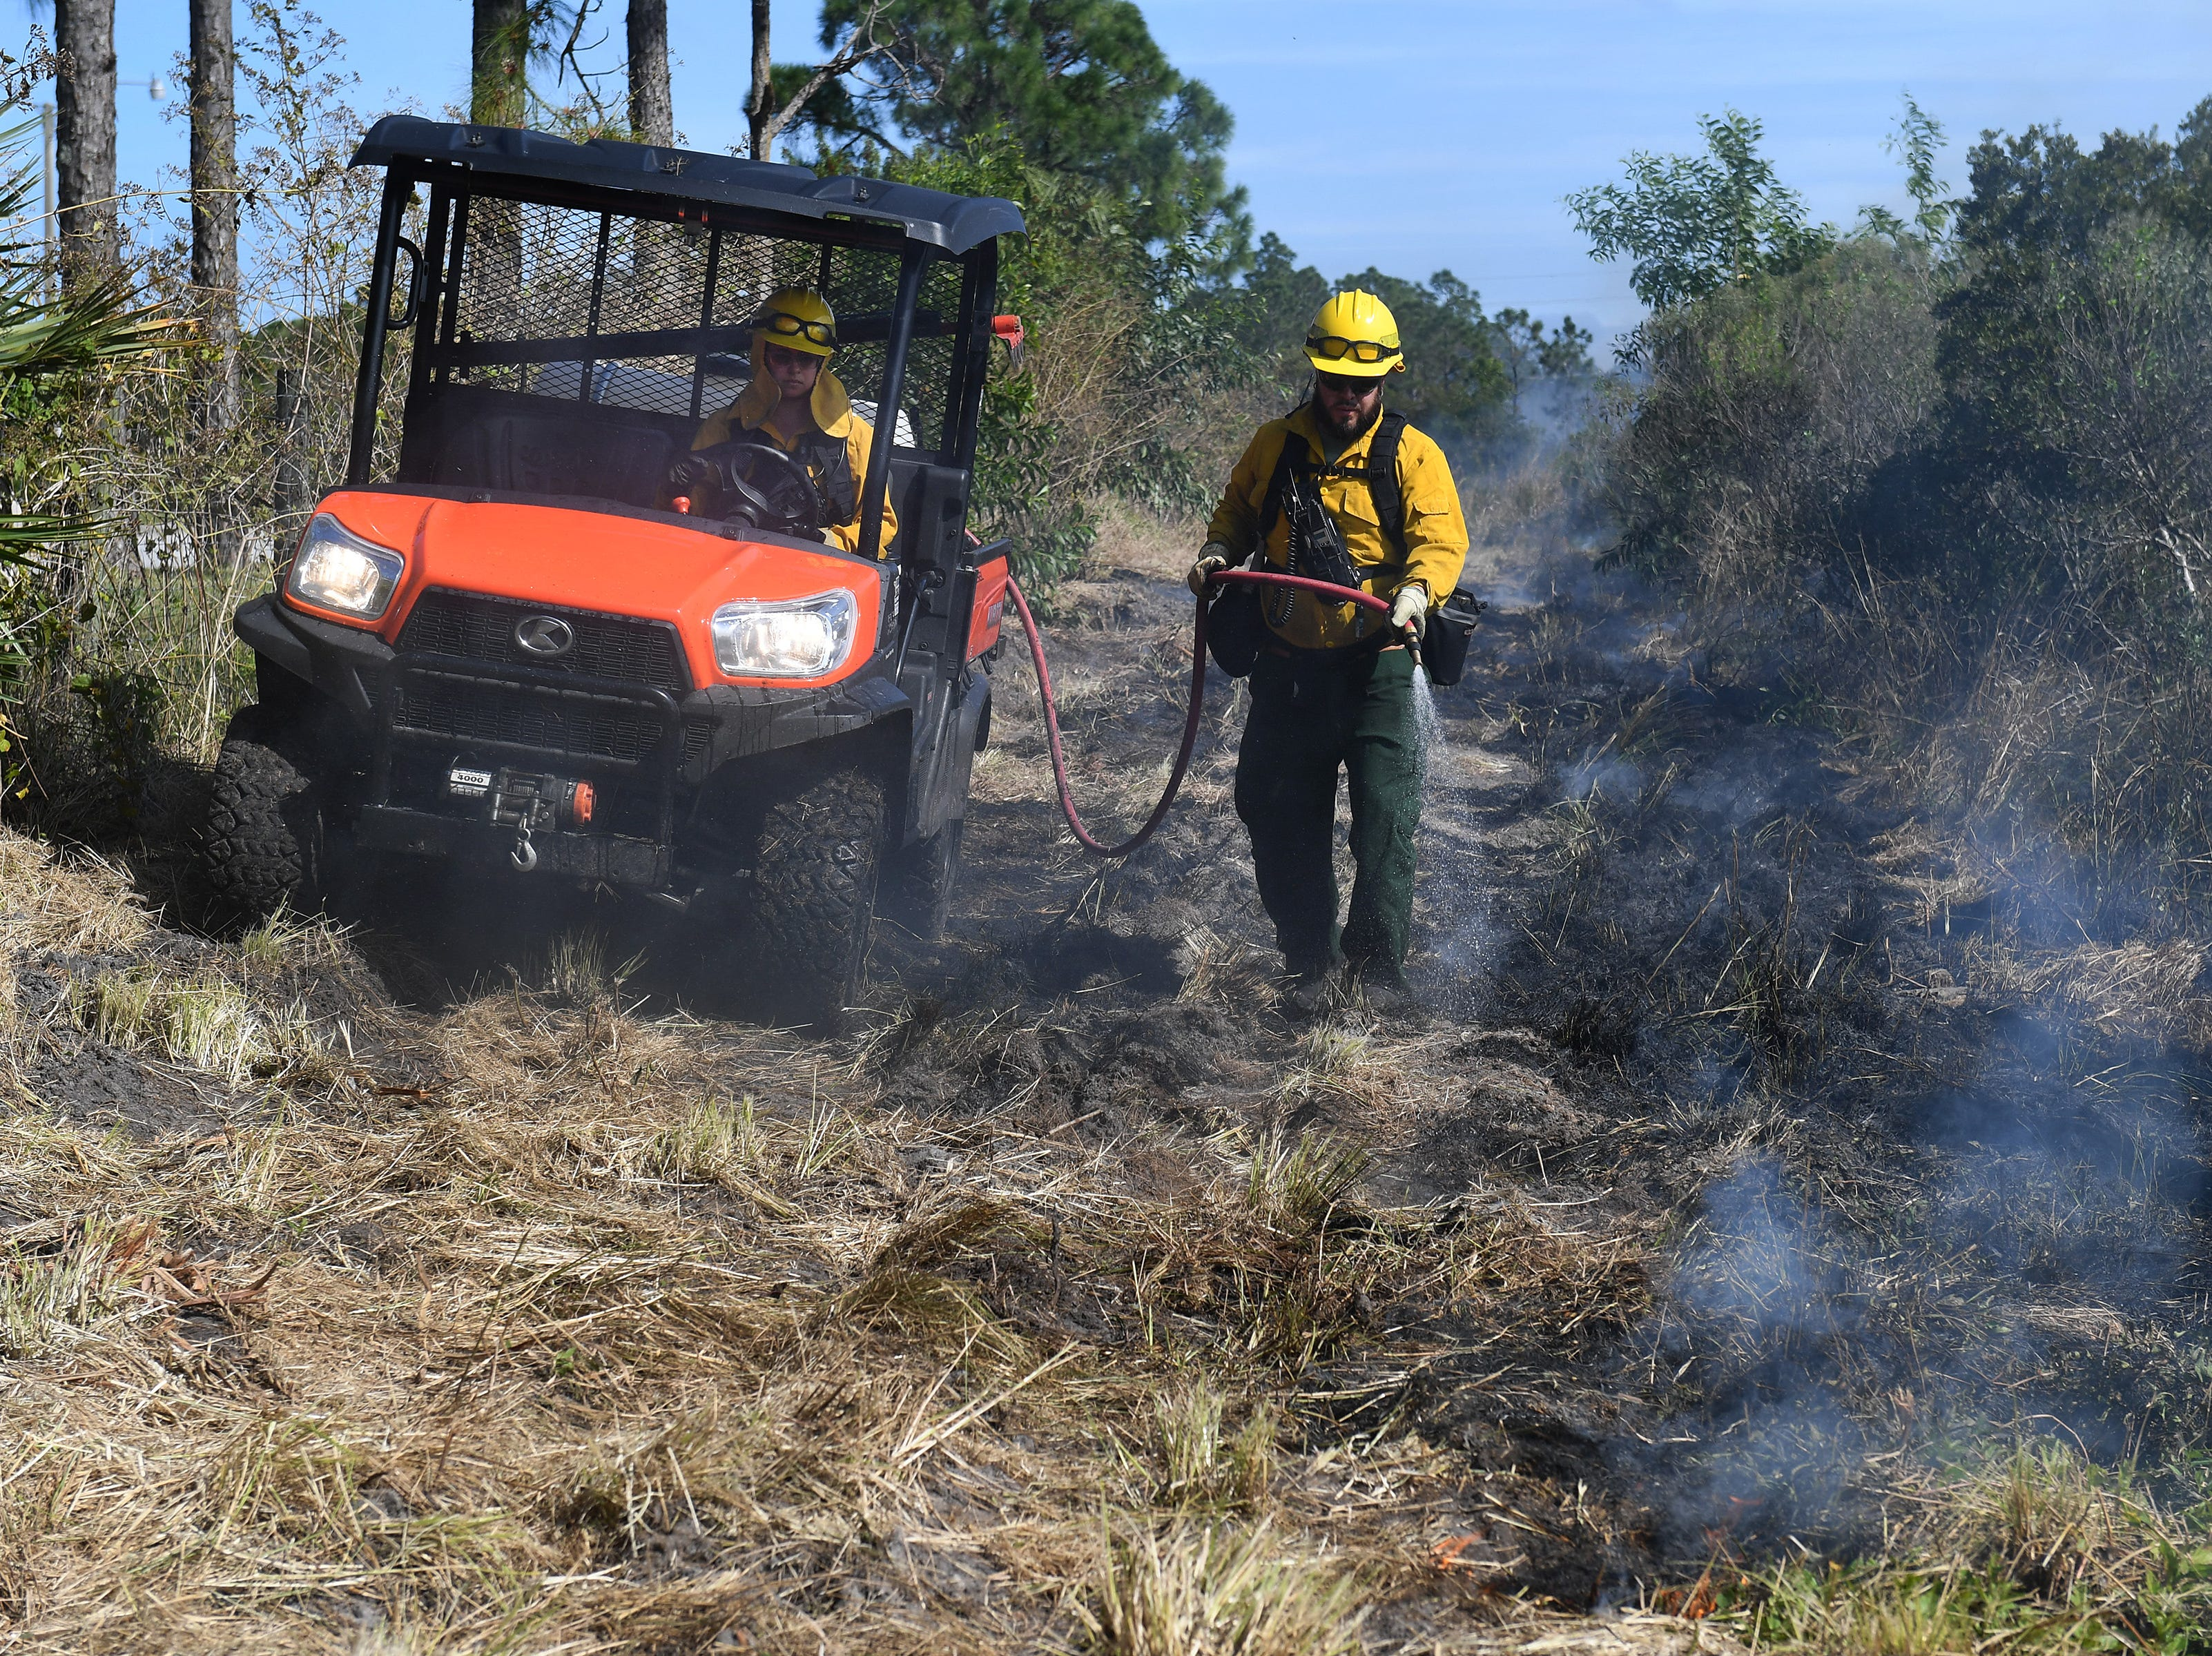 Florida Park Service ignites the brush at the Atlantic Ridge Preserve State Park during a planned one day prescribed burn on Monday, Feb. 4, 2019, in Hobe Sound. Twelve crew members of the Florida Park Service burned an area of approximately 180 acres of pine flatwoods south of Seabranch Boulevard to reduce the undergrowth and decrease the potential for future wildfire.